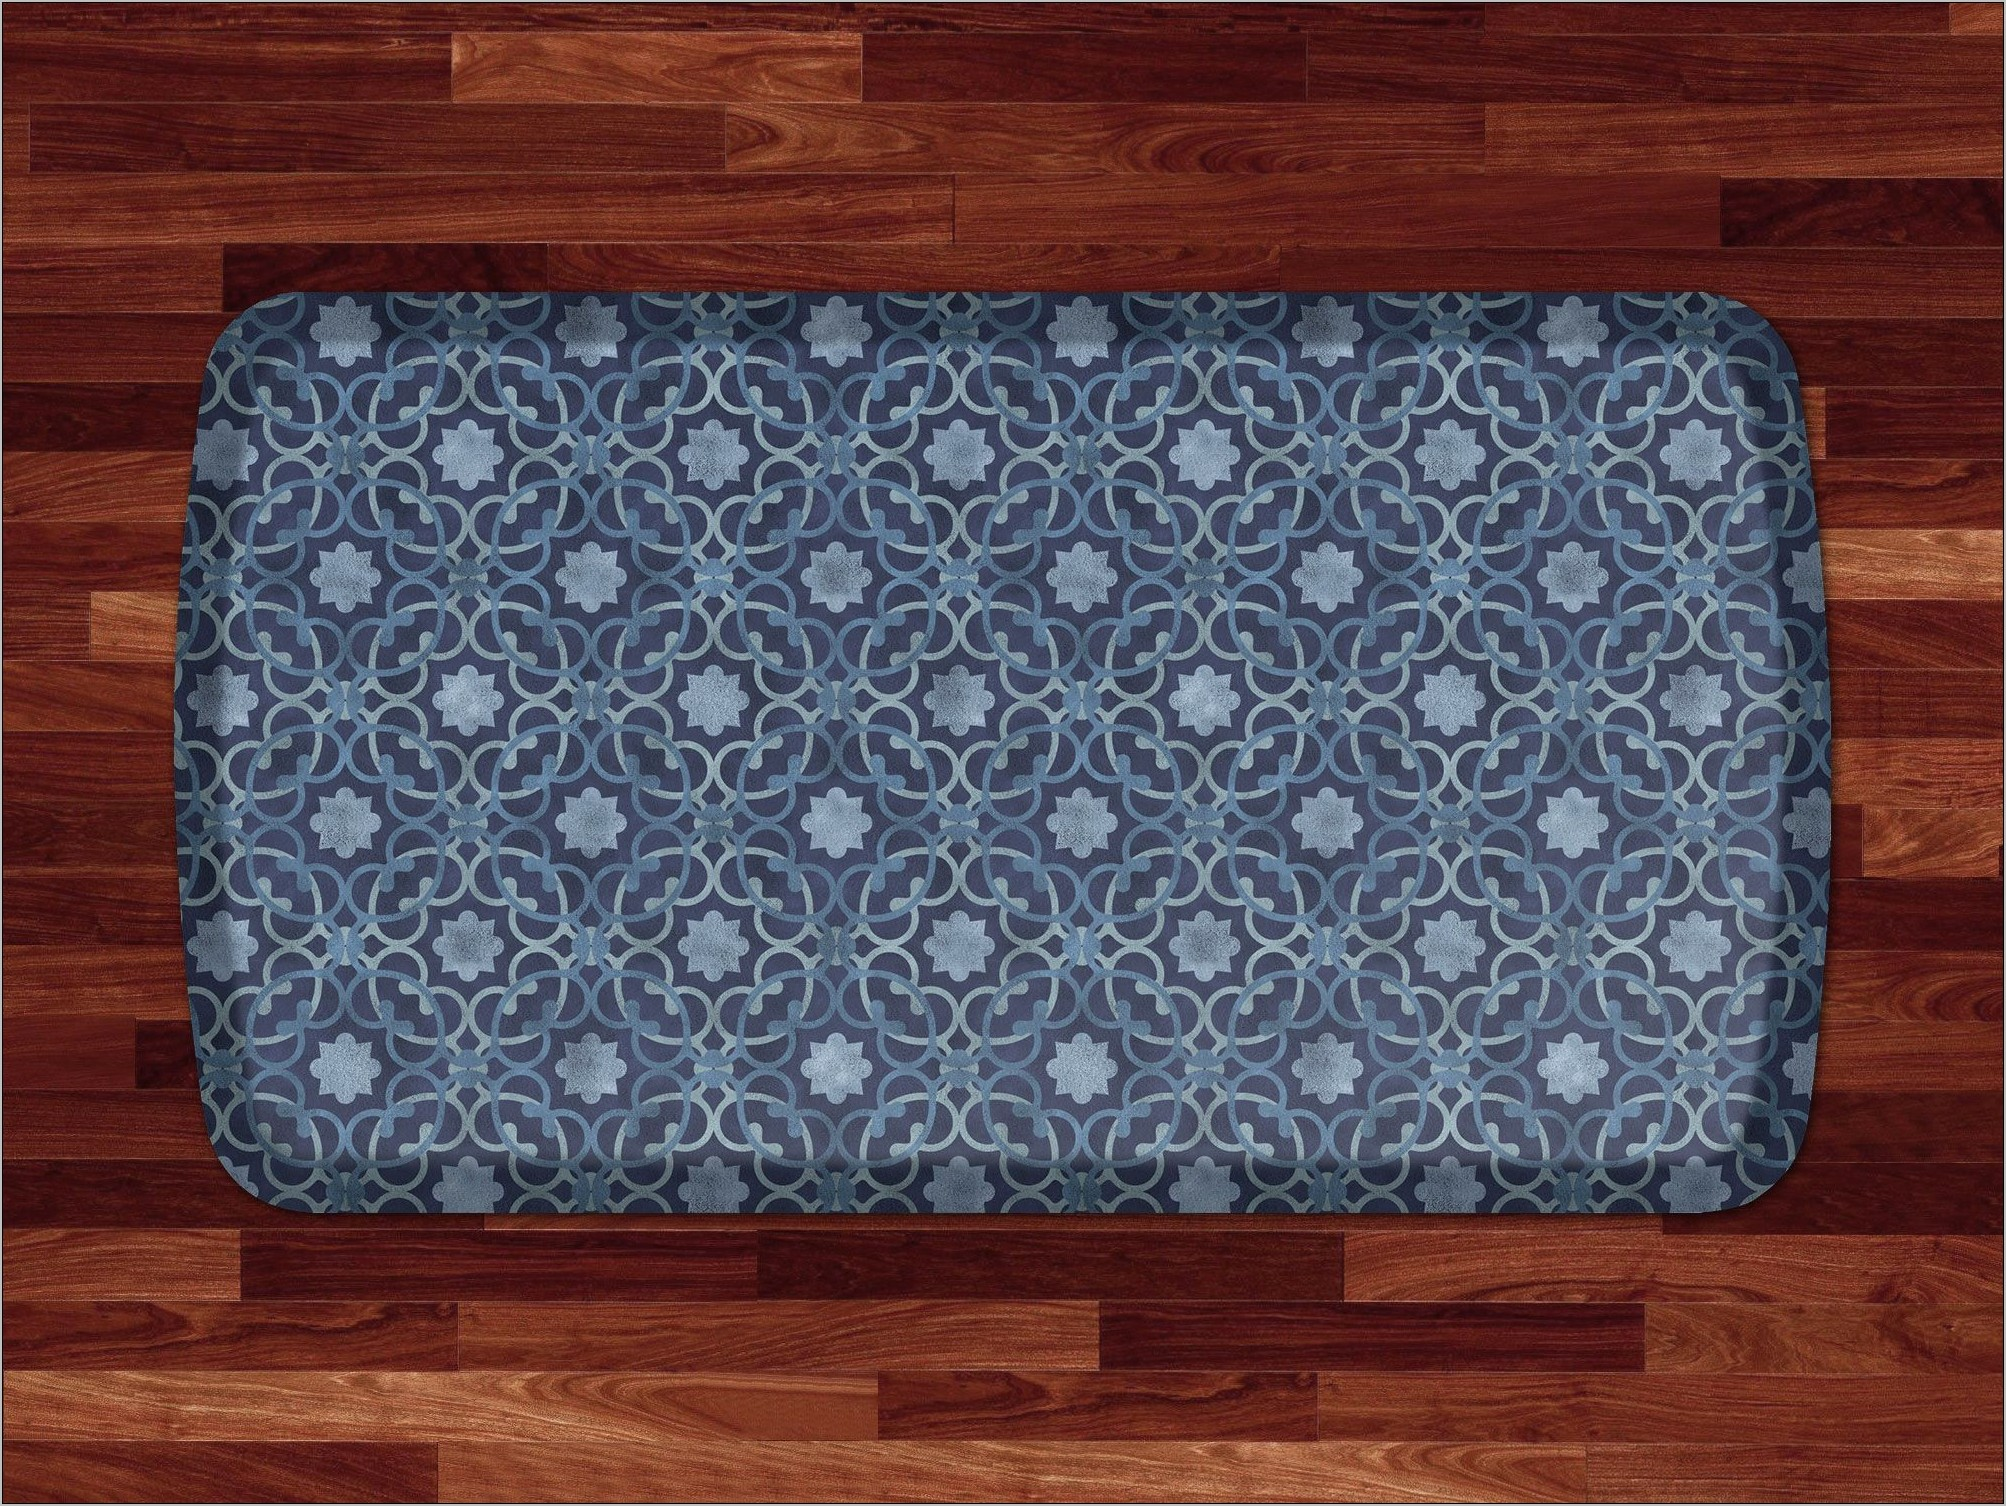 Decorative Comfort Kitchen Floor Mats